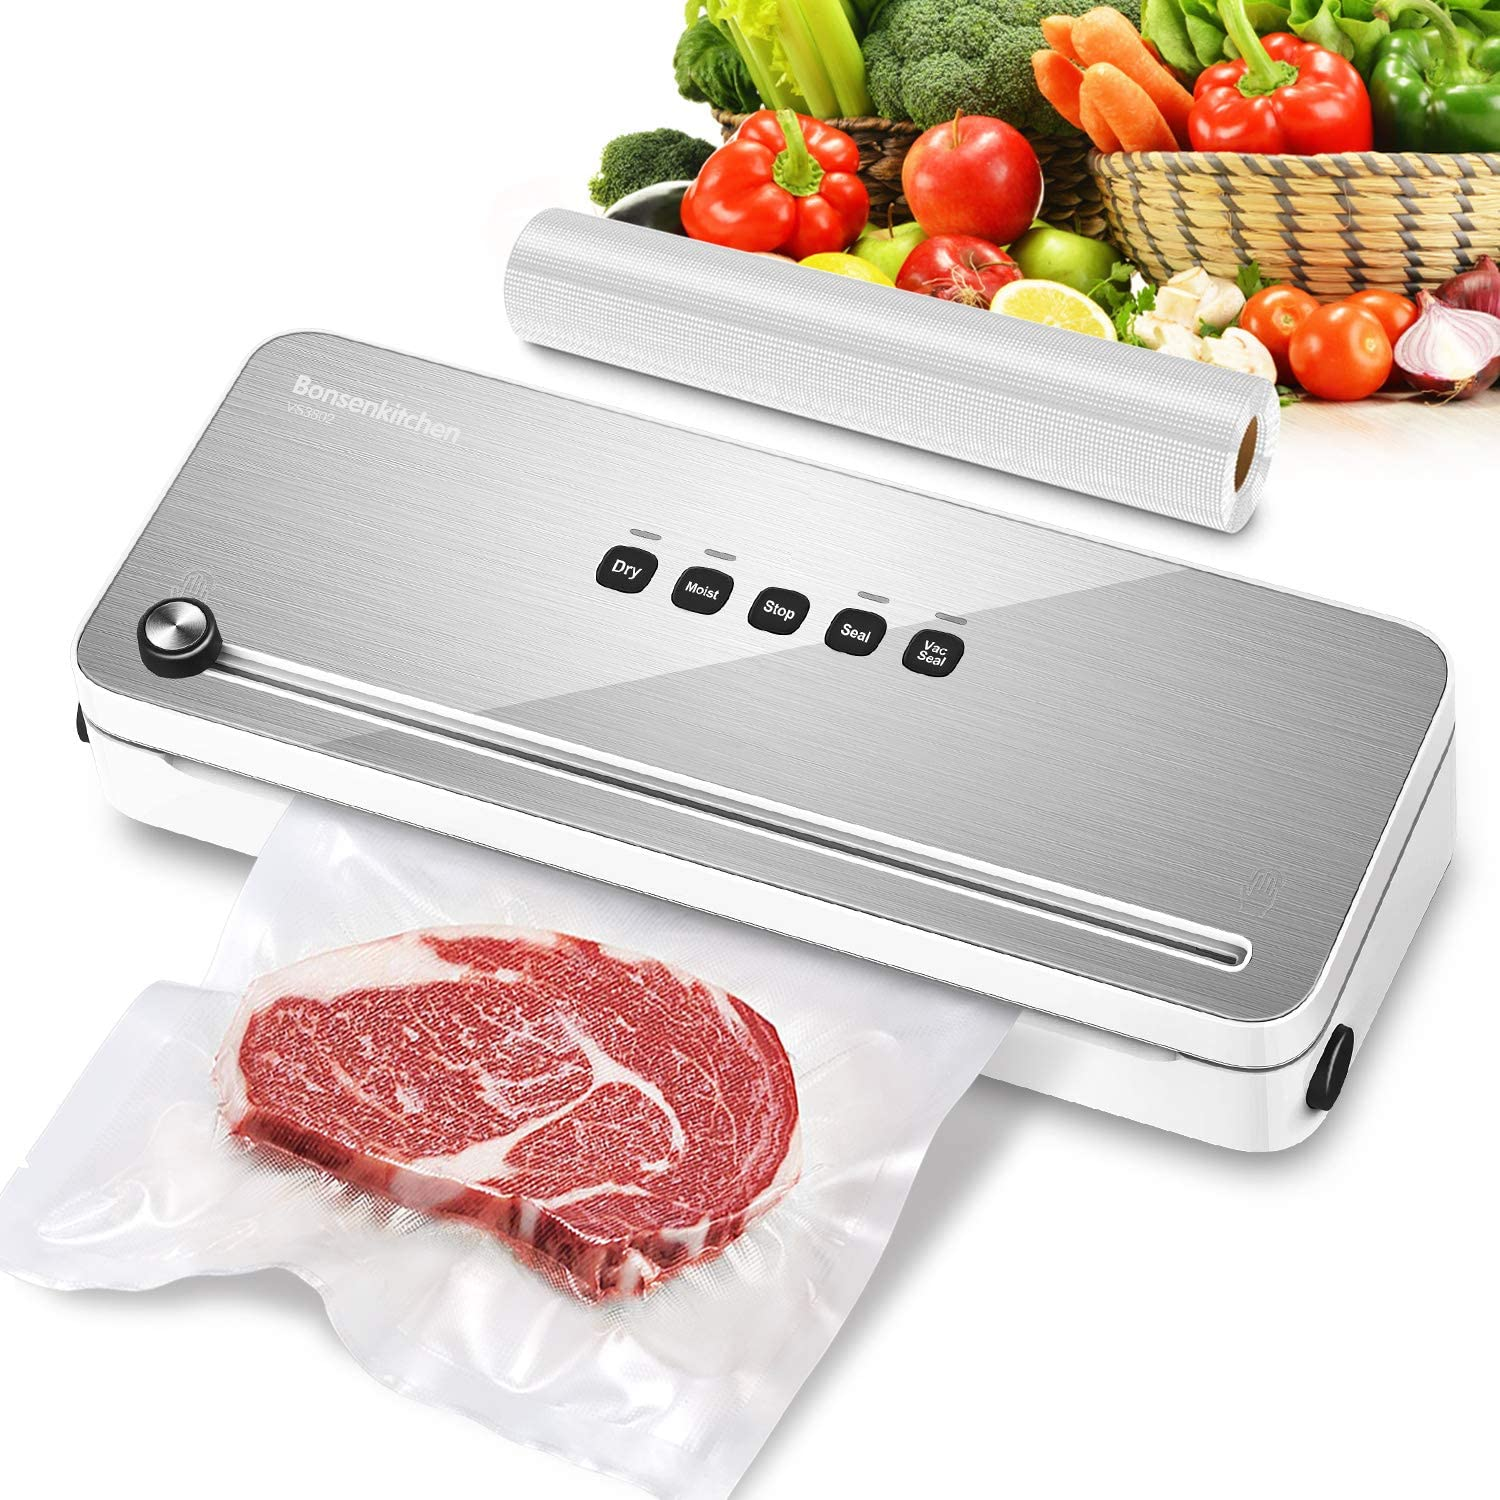 Bonsenkitchen VS3802 Vacuum Sealer